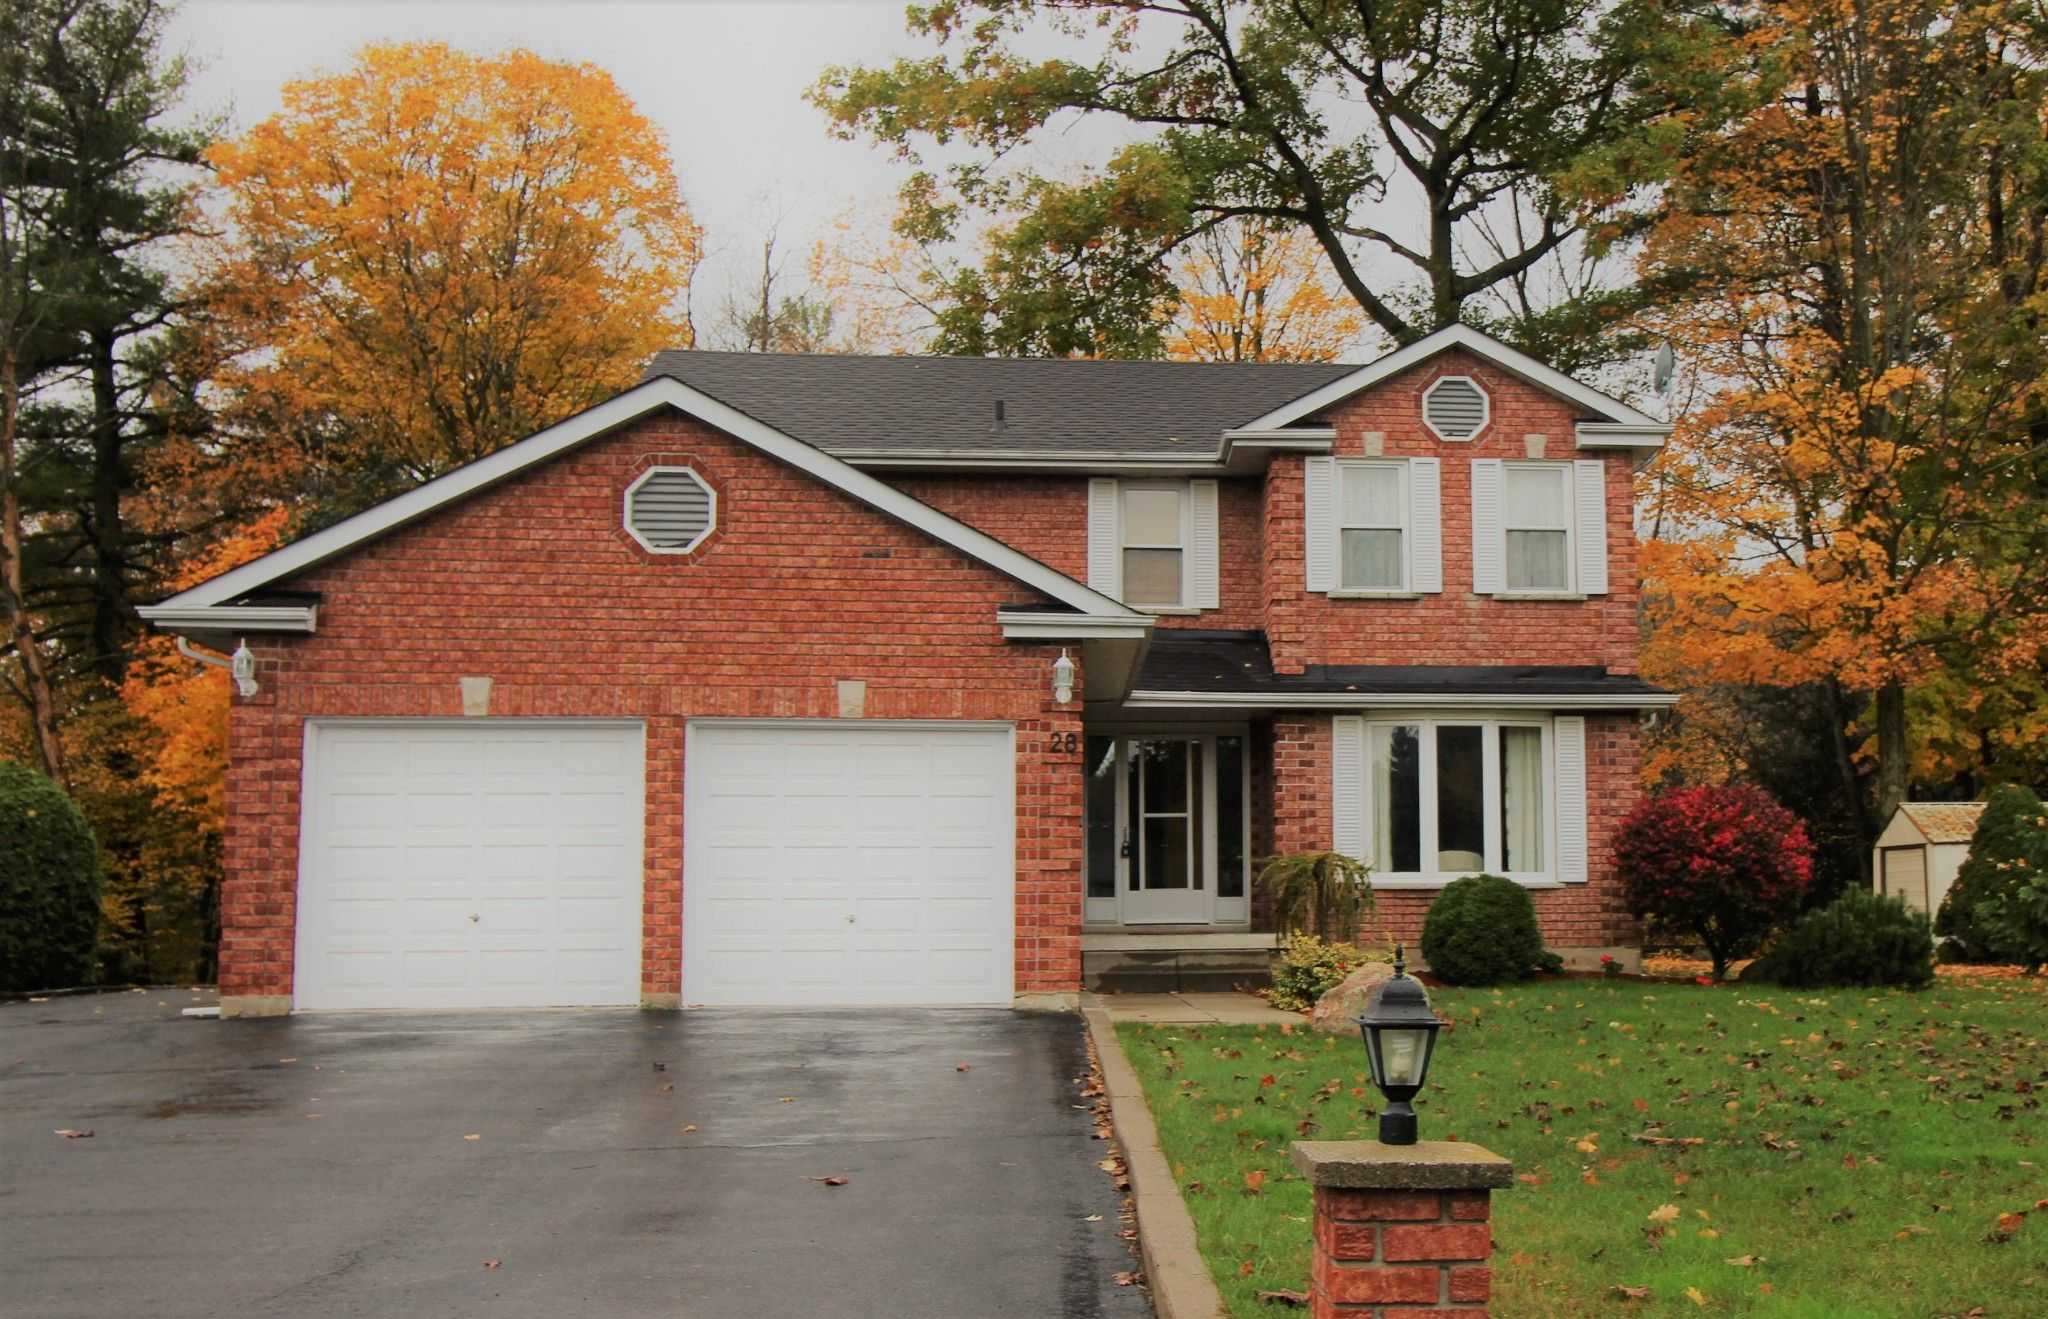 Main Photo: 28 Burgess Crescent in Cobourg: House for sale : MLS®# 40009373